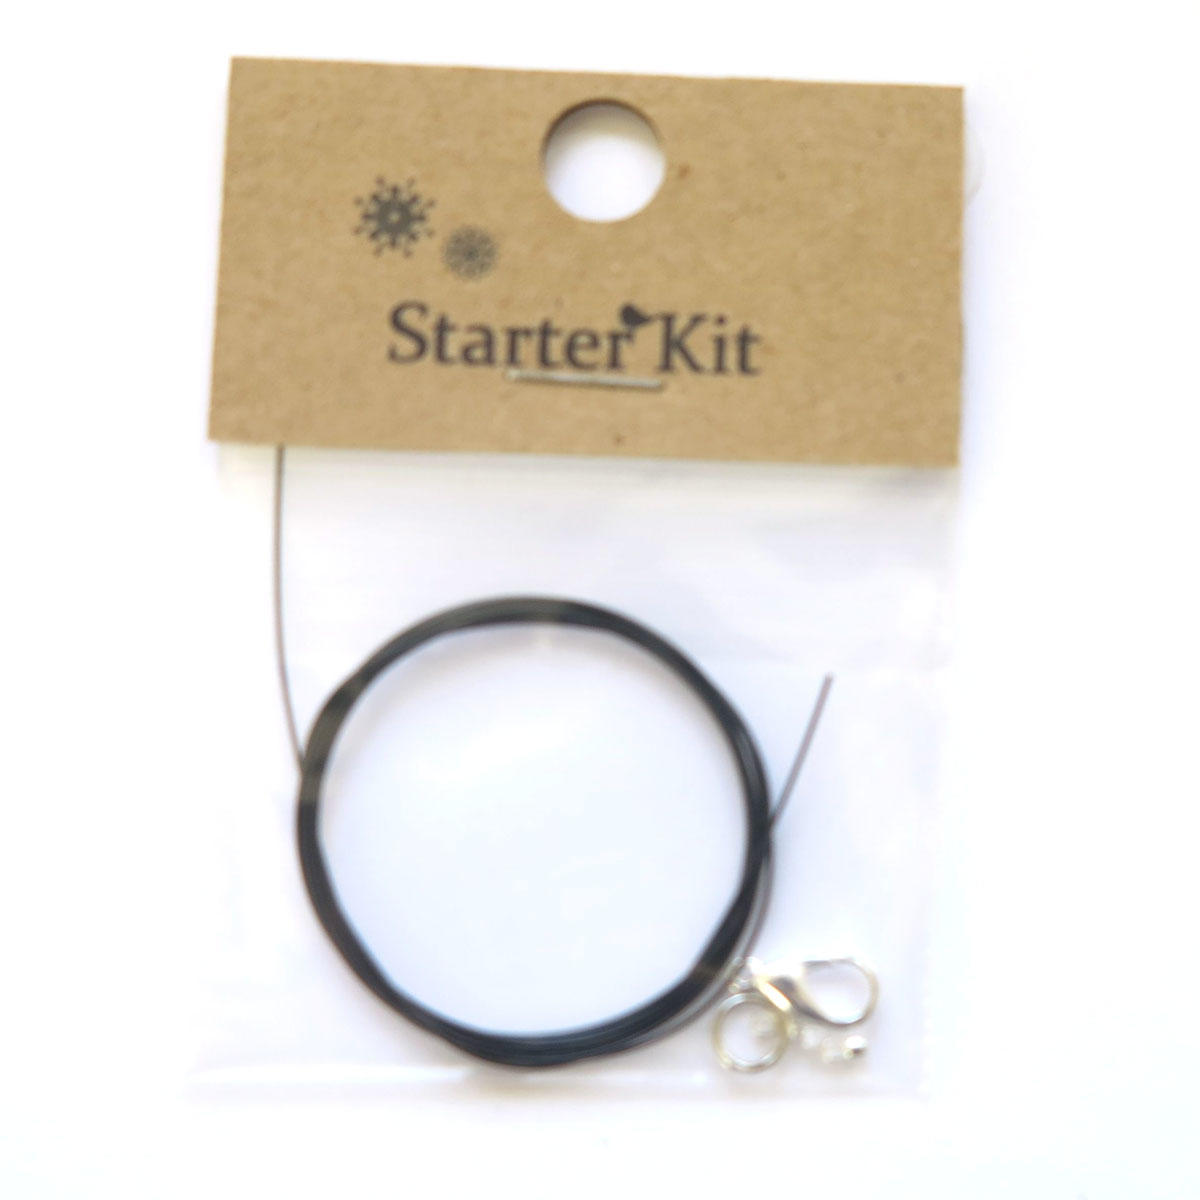 Black Necklace Kit or Mending Kit